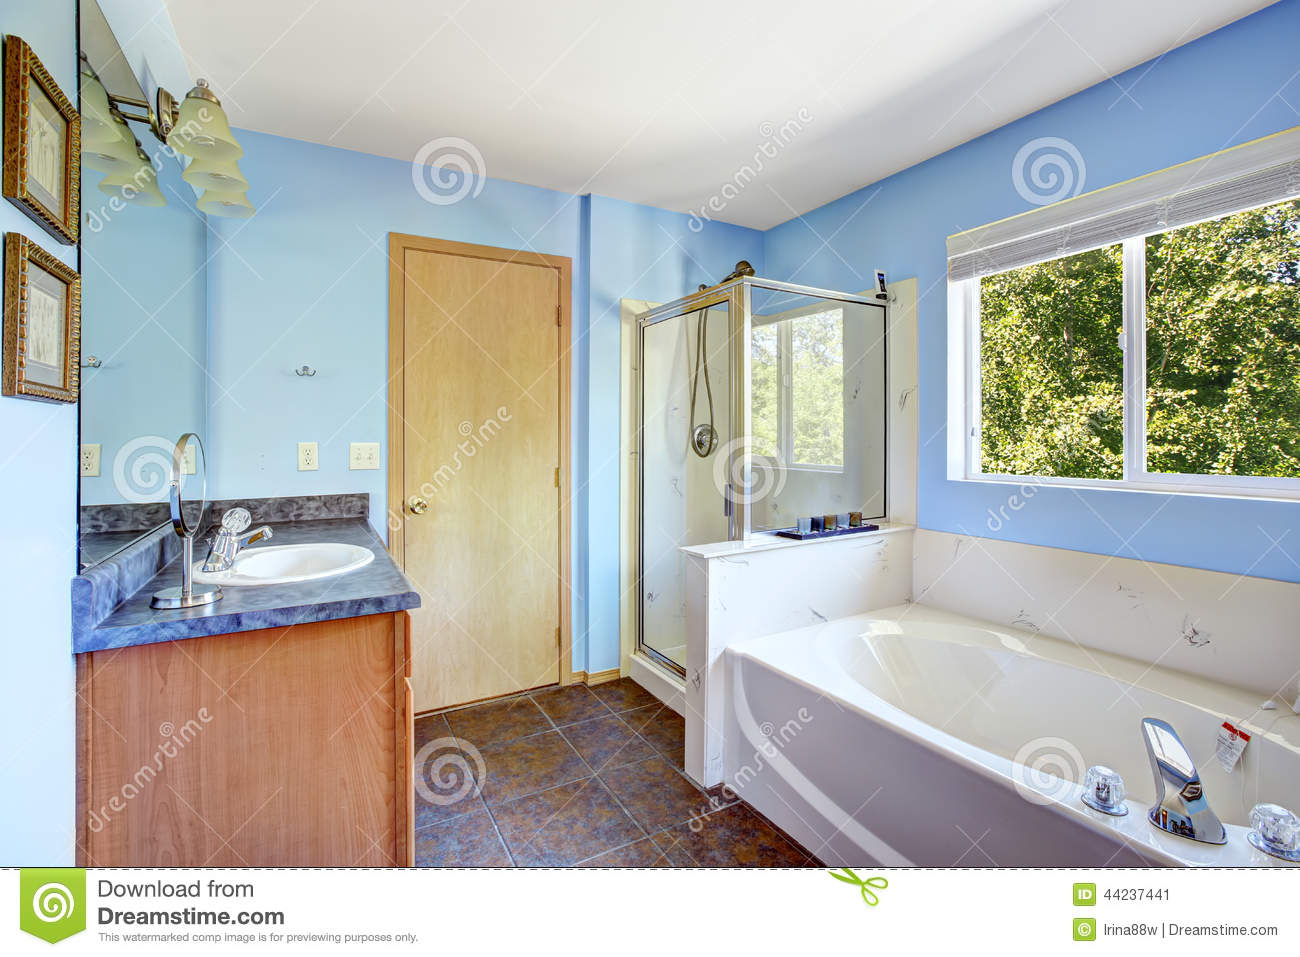 Bathroom Lights Rusting very bright bathroom in light blue color stock photo - image: 44237441